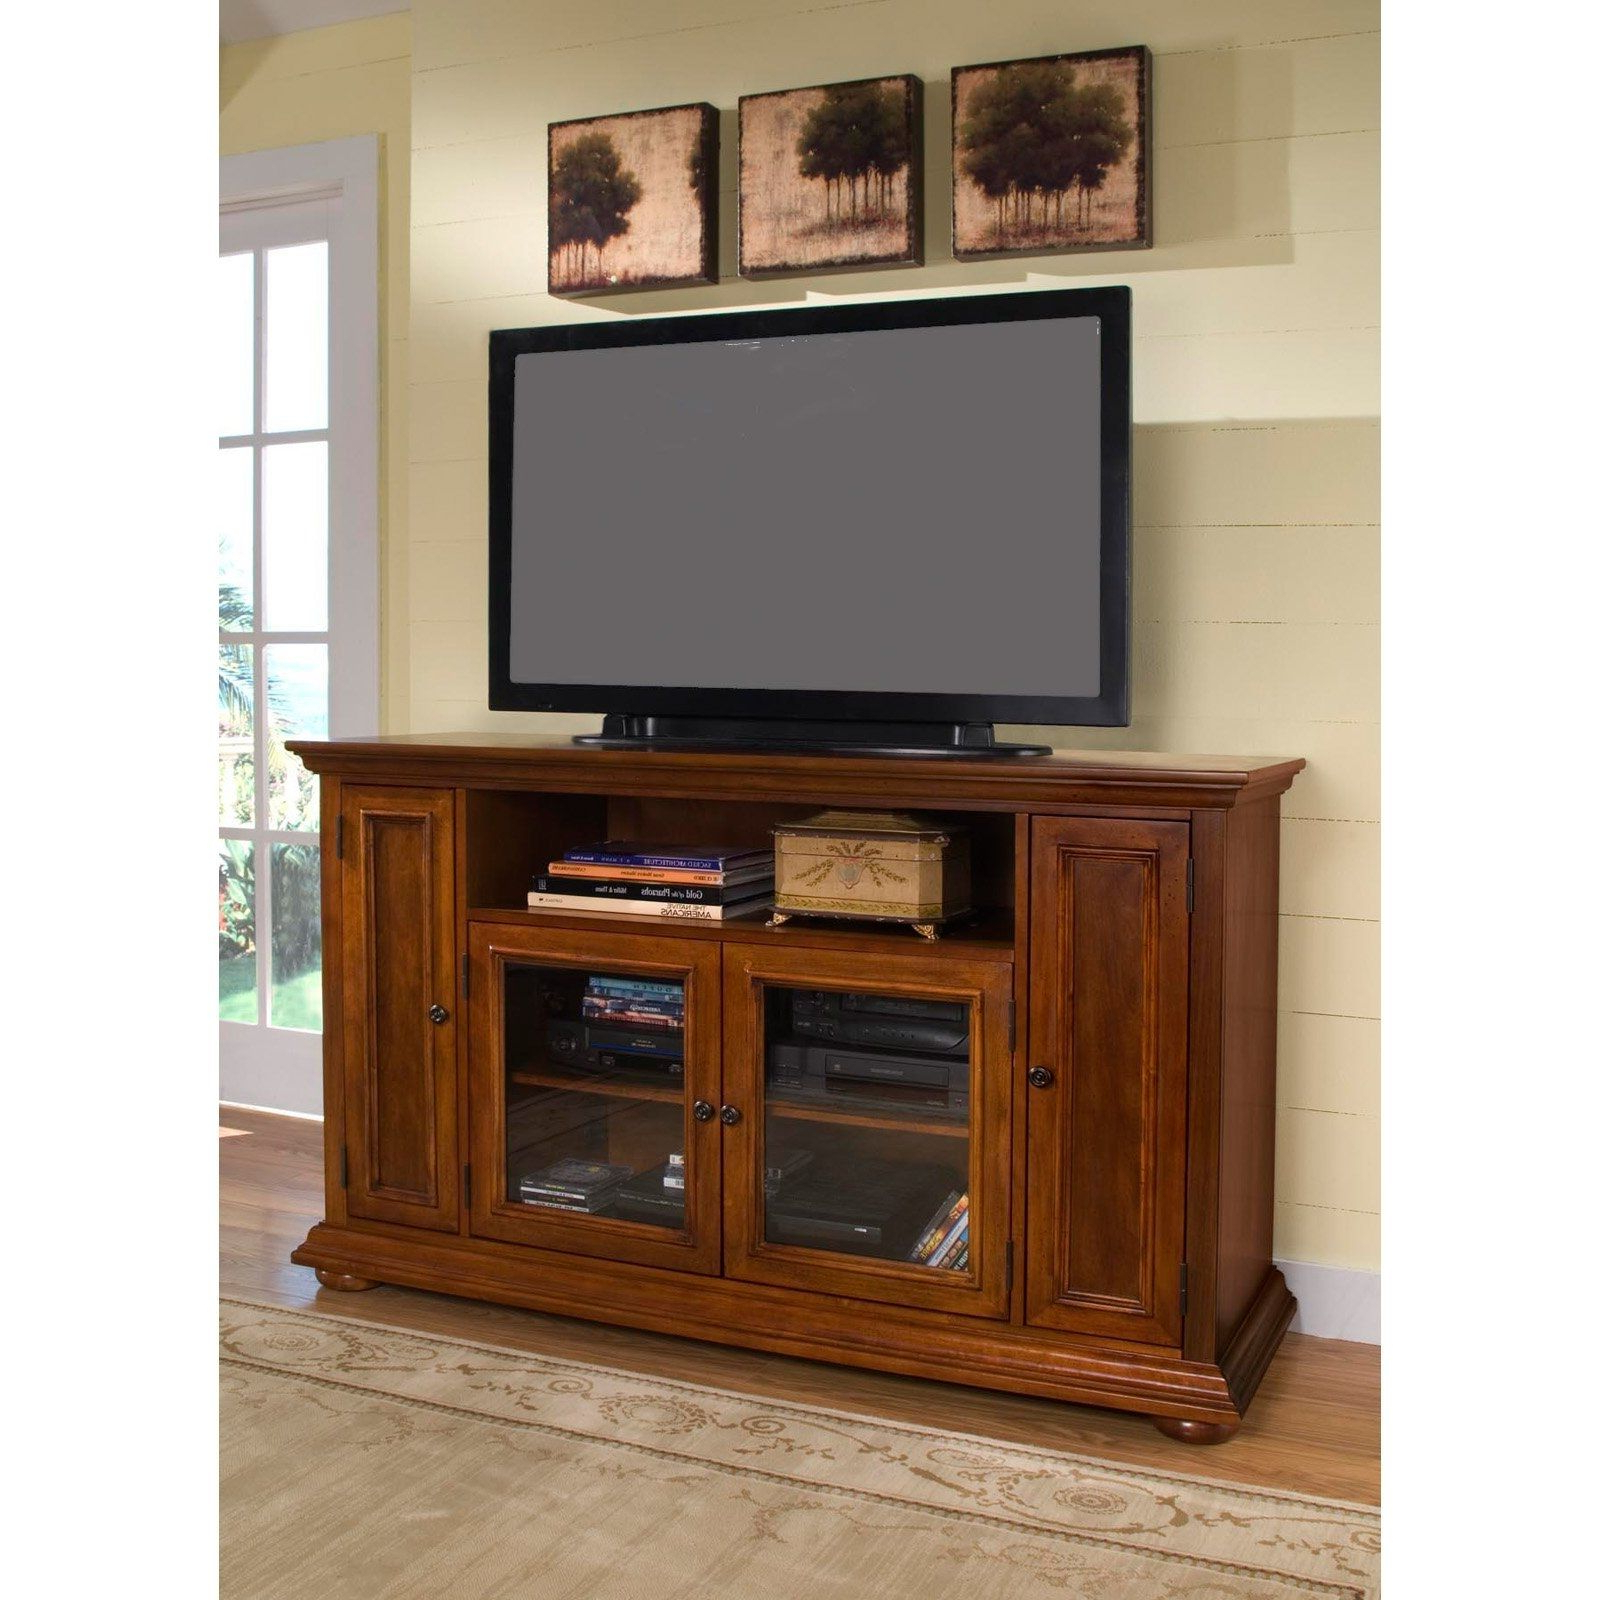 Corner Oak Tv Stands For Flat Screen Inside Popular Corner Oak Tv Cabinets For Flat Screens With Doors (View 3 of 20)